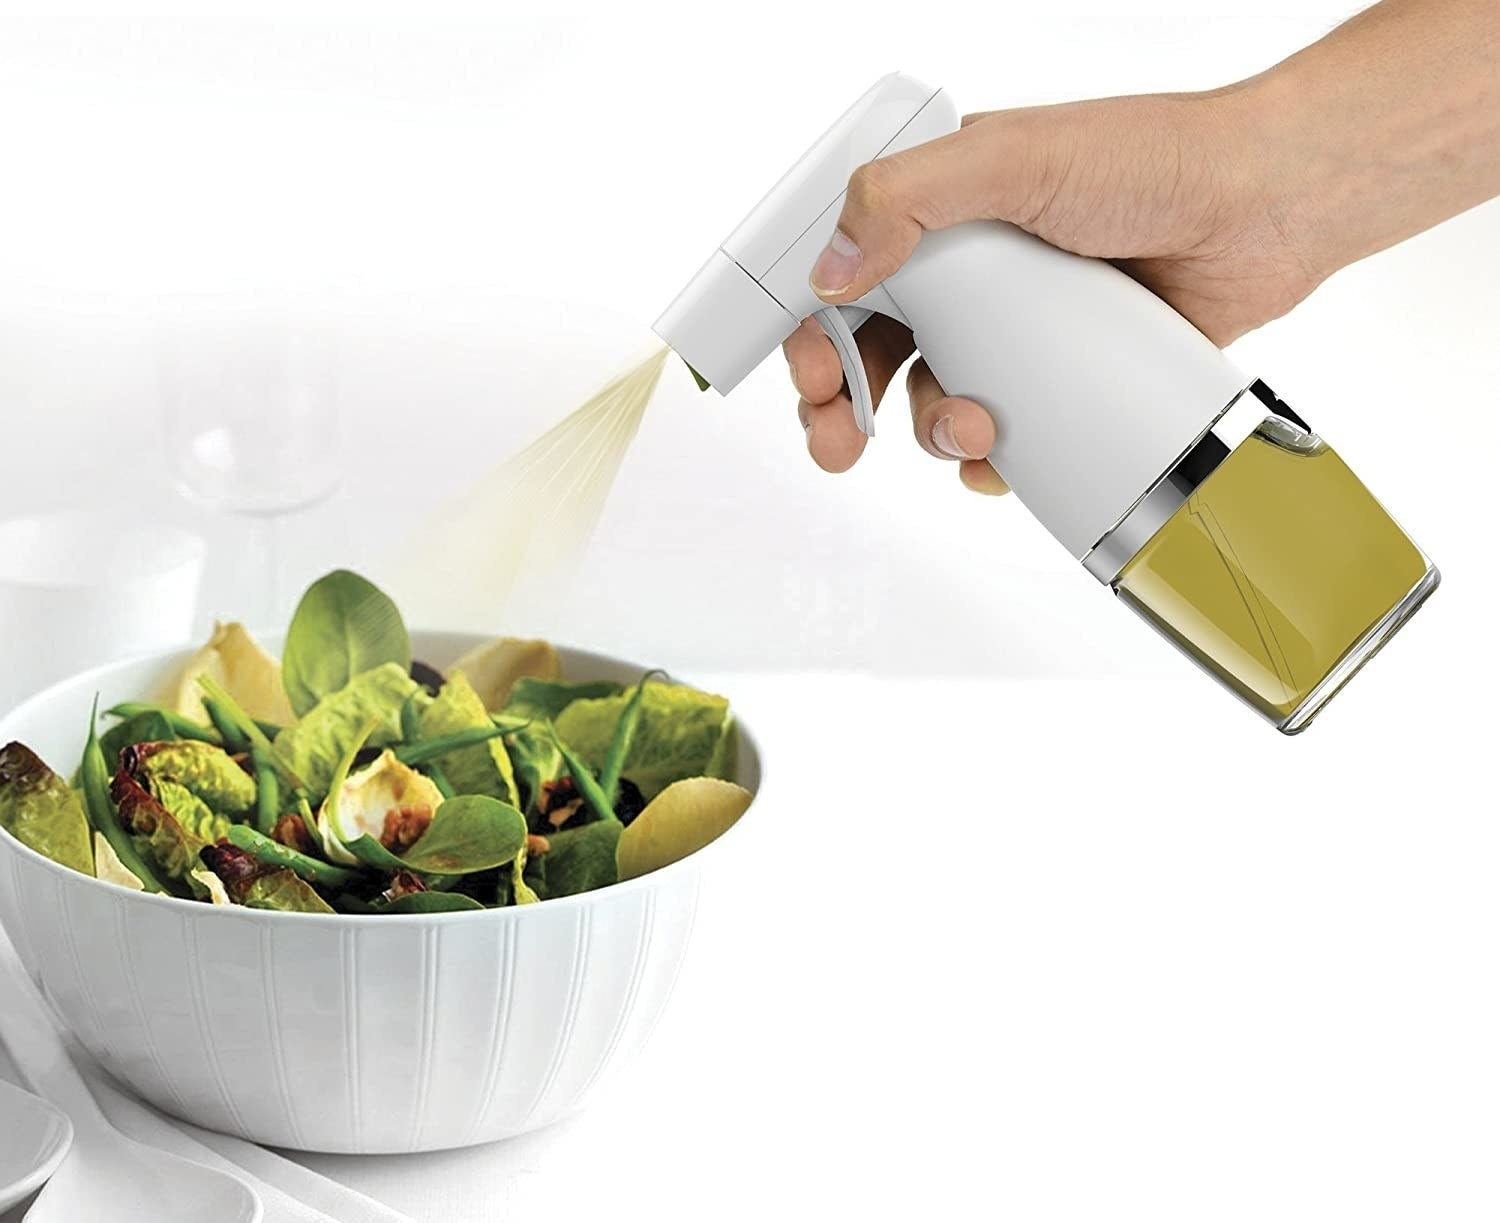 A person uses the mister to spritz a salad with olive oil